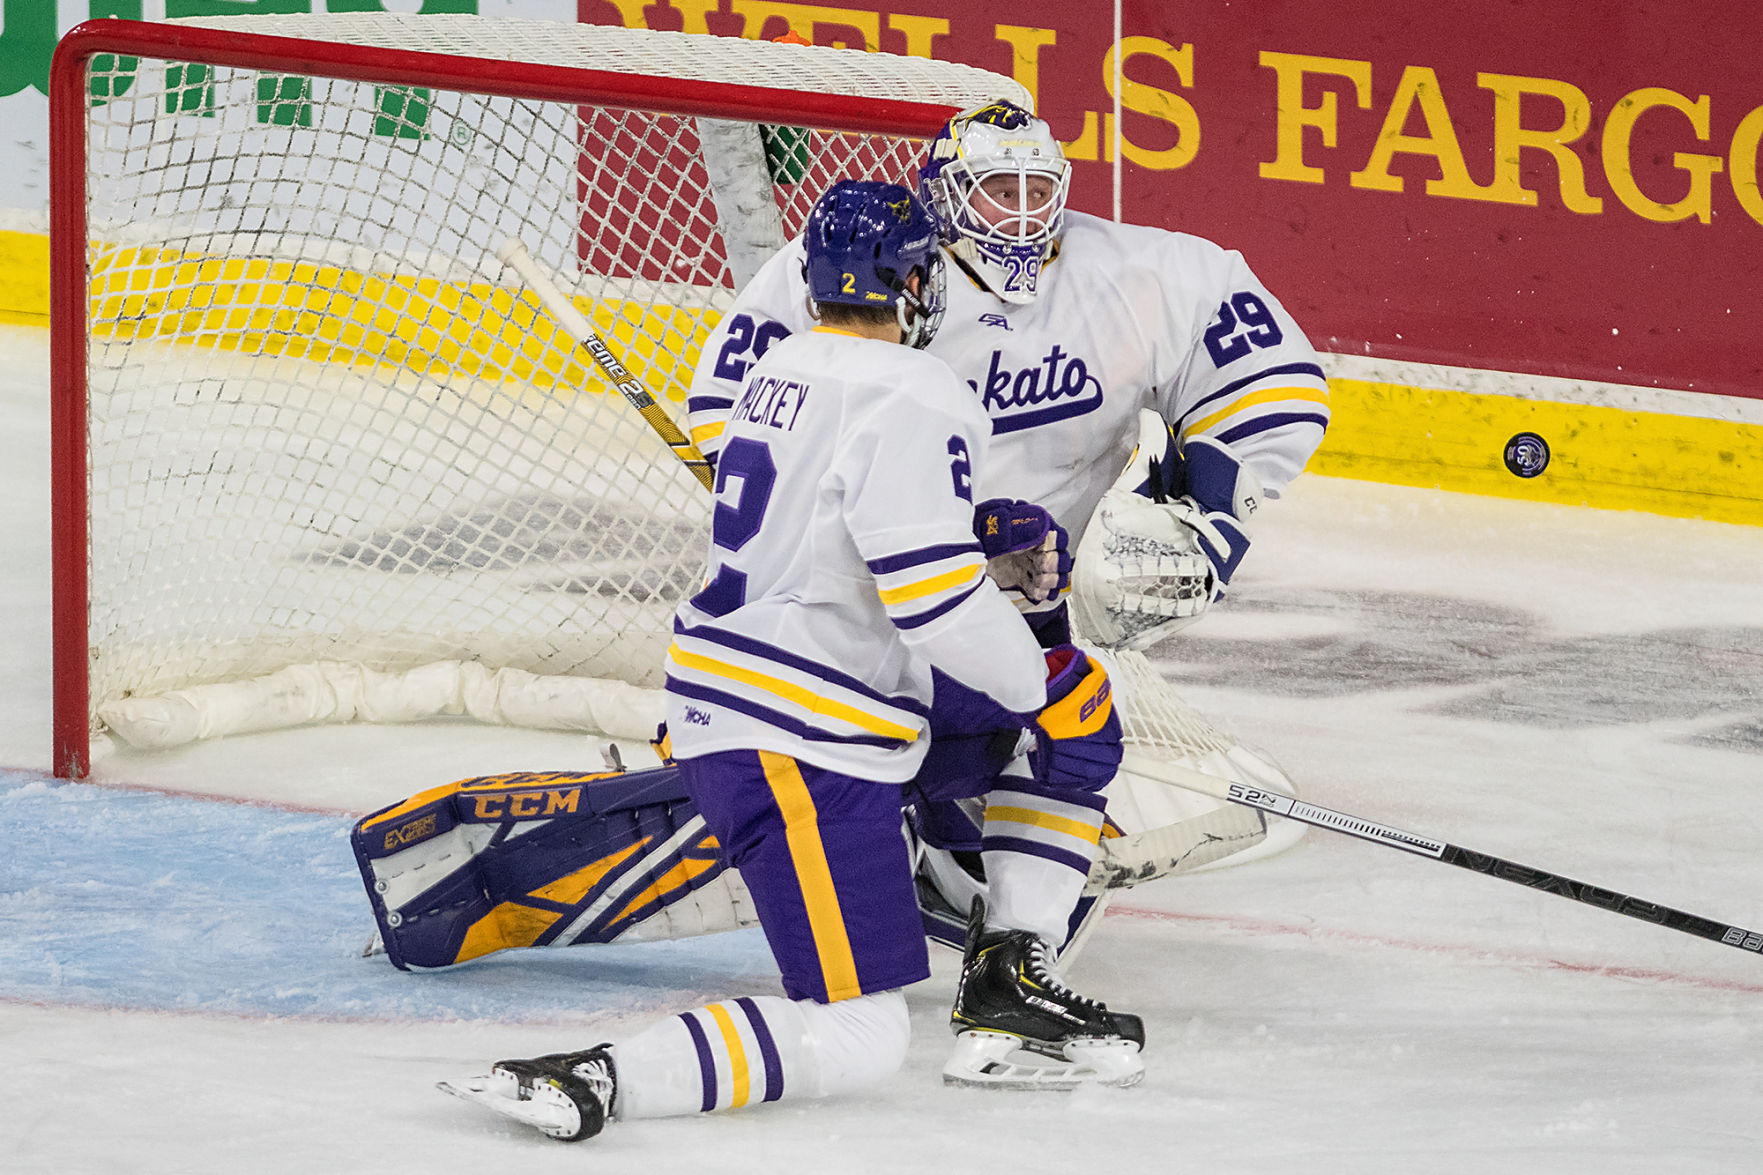 WCHA: PucKato - Rankings Rise And Conference Accolades